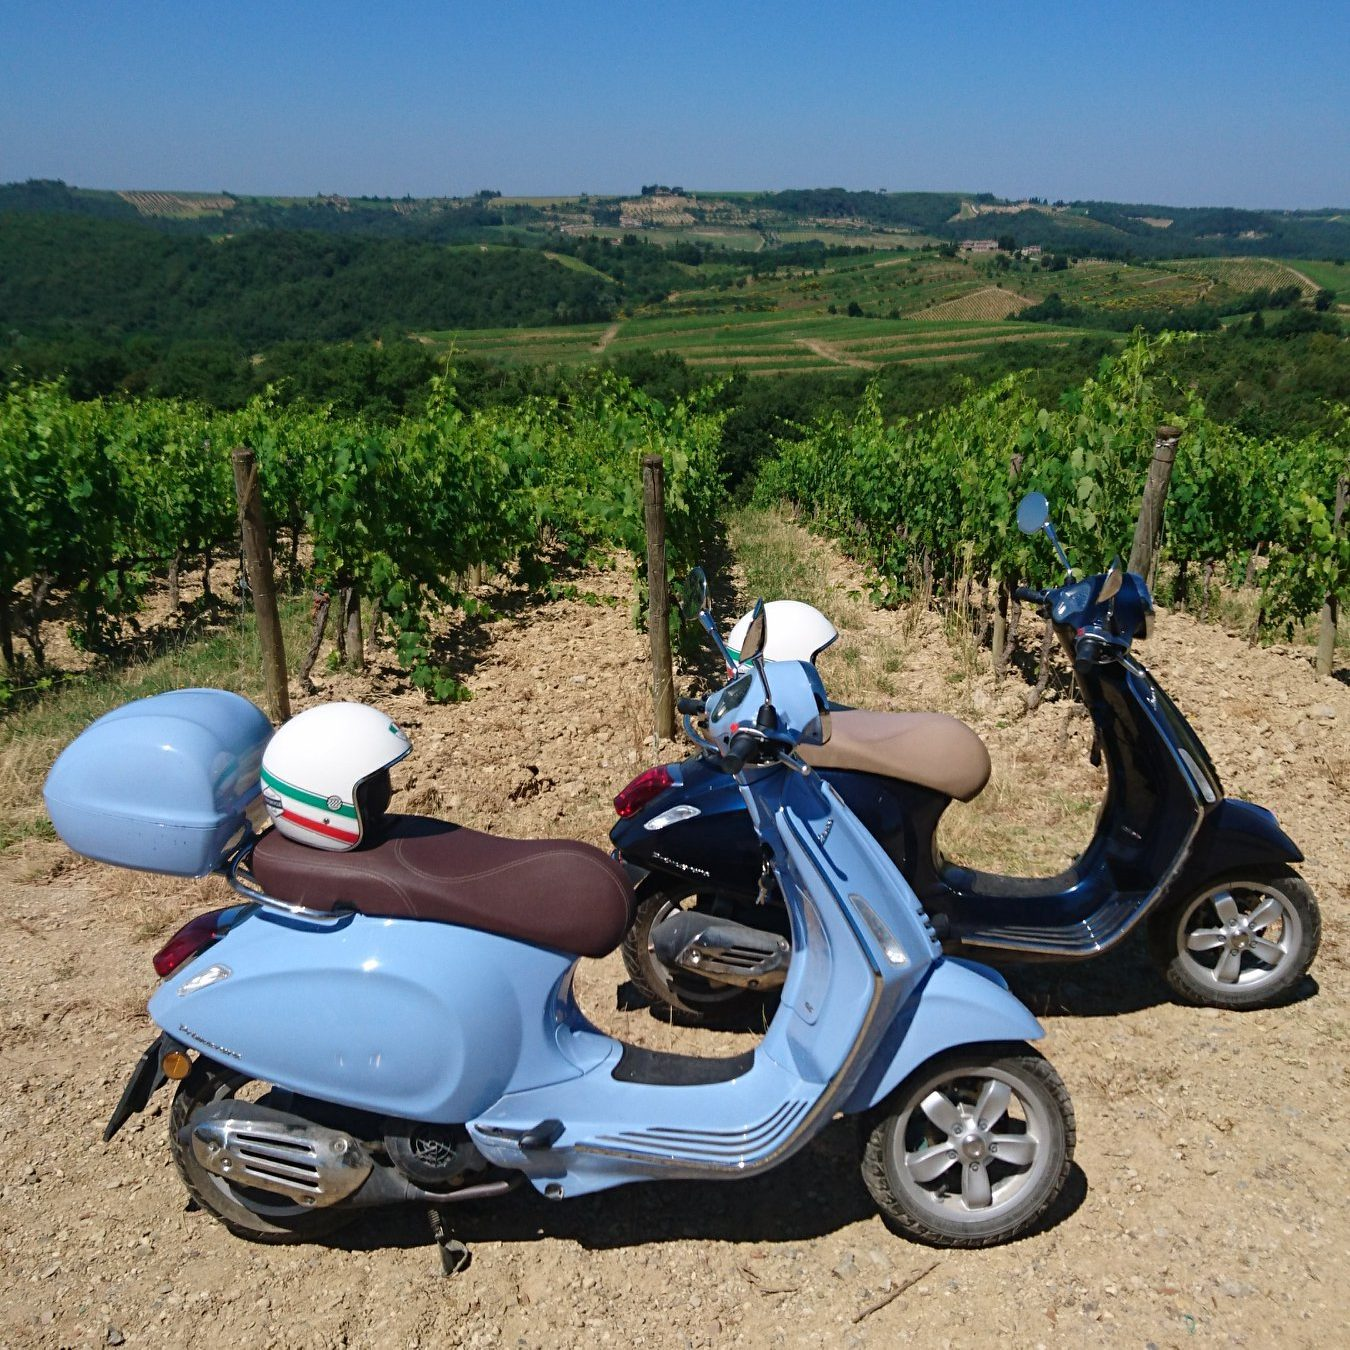 Real freedom in the vineyards in tuscany